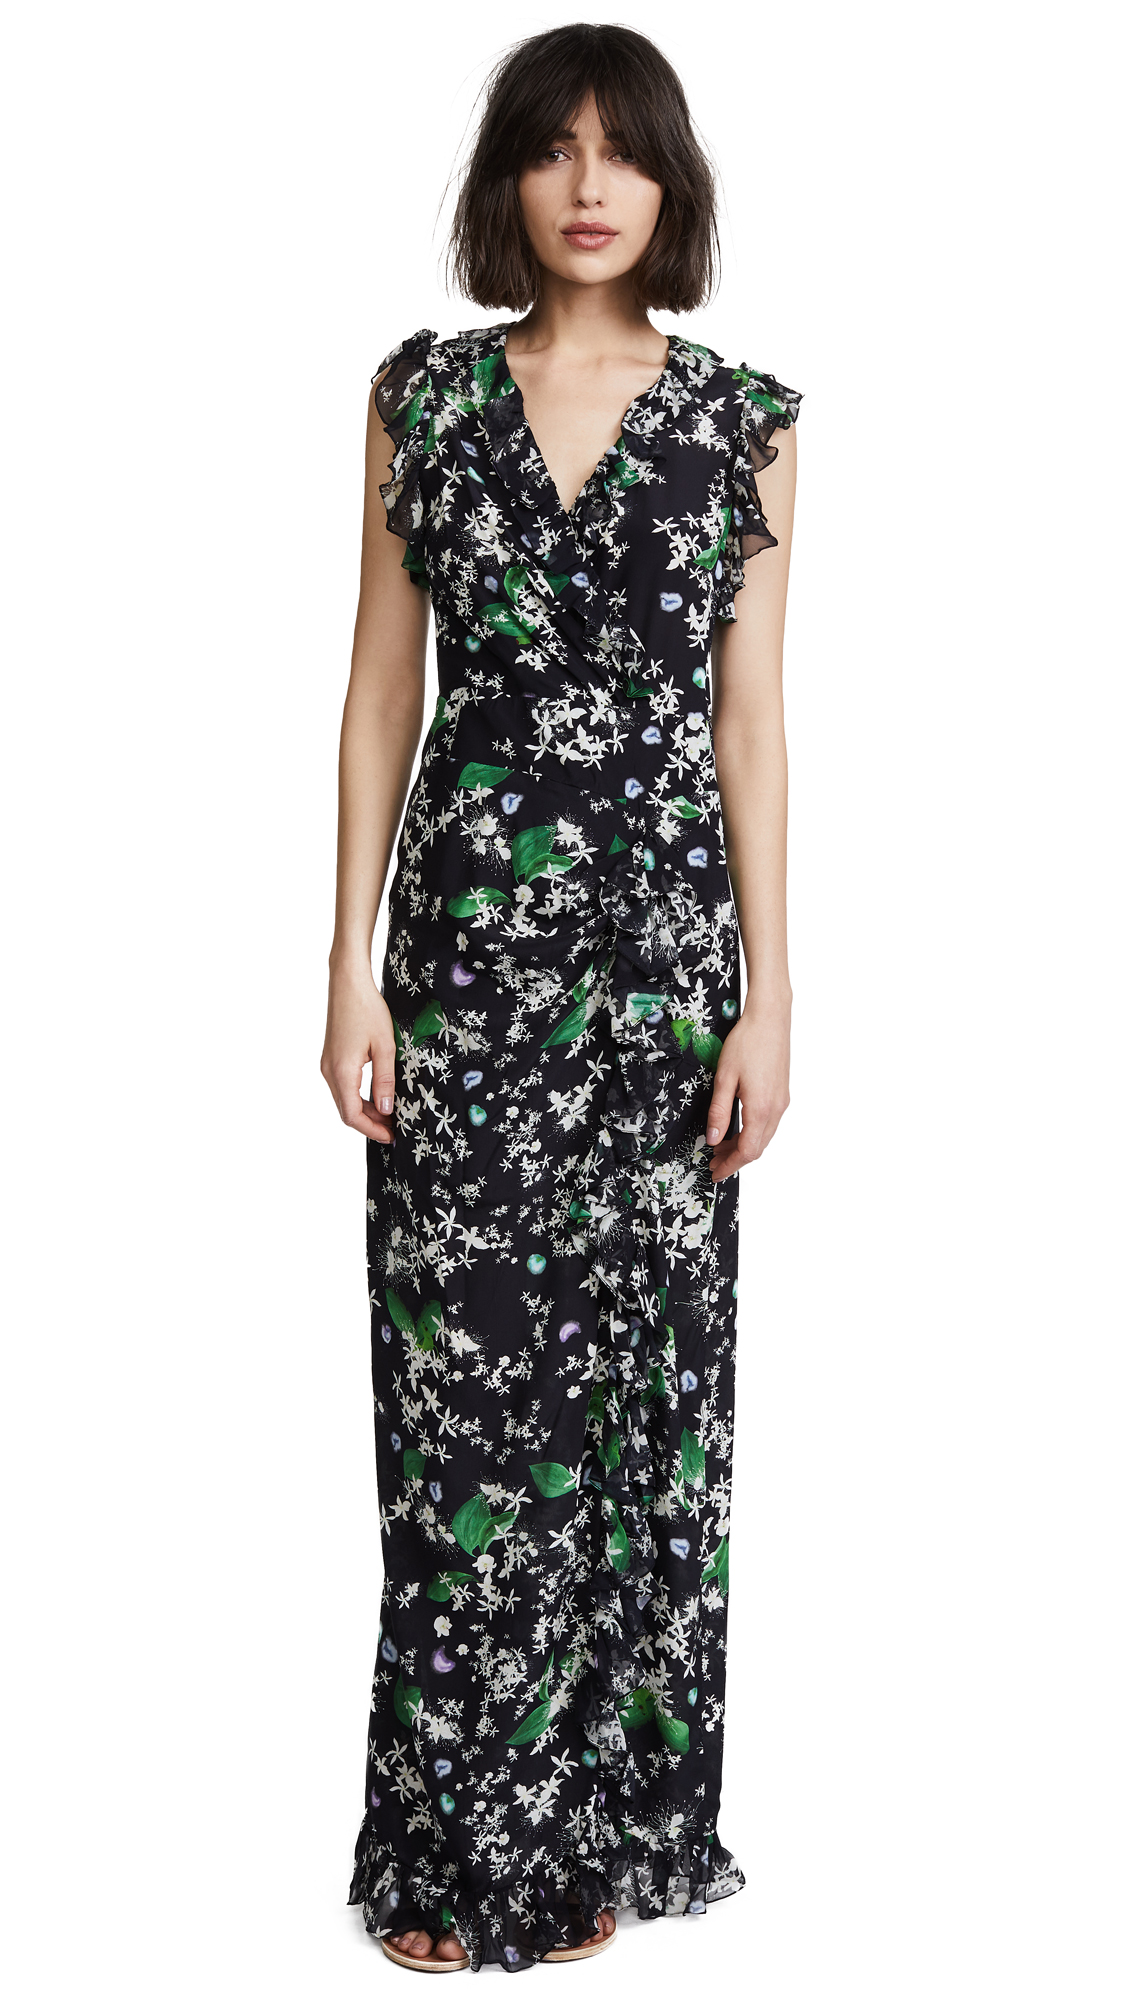 Isolda Georgina Dress In Black Daisy